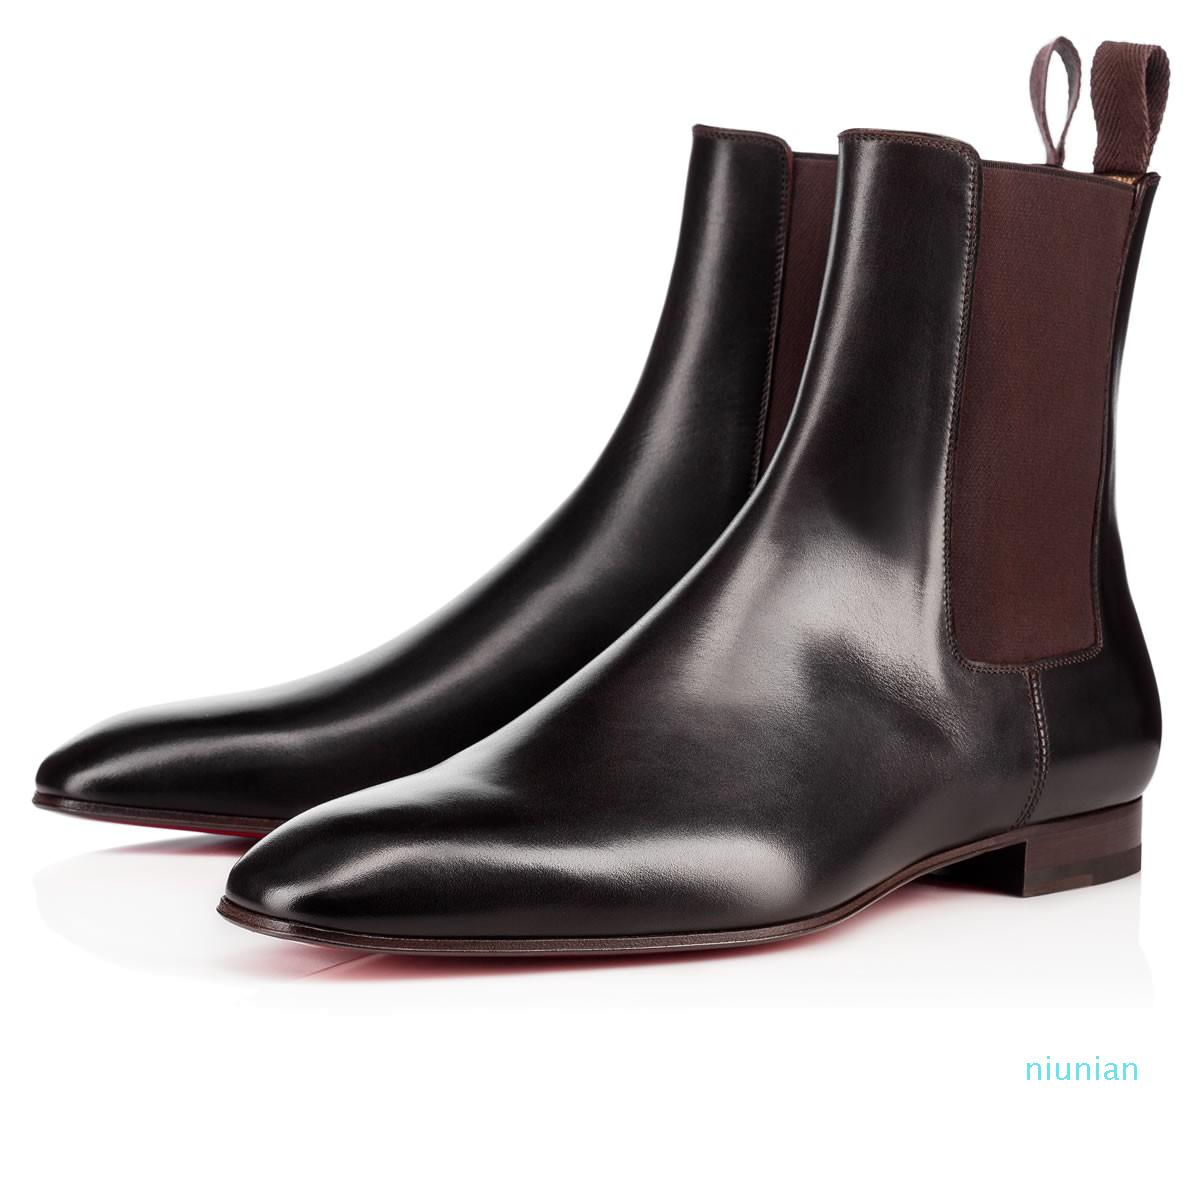 Hot Sale- Roadie Flat For Men Ankle Boots Design Comfortable Genuine Leather Perfect Party Dress Wedding Walking EU38-47